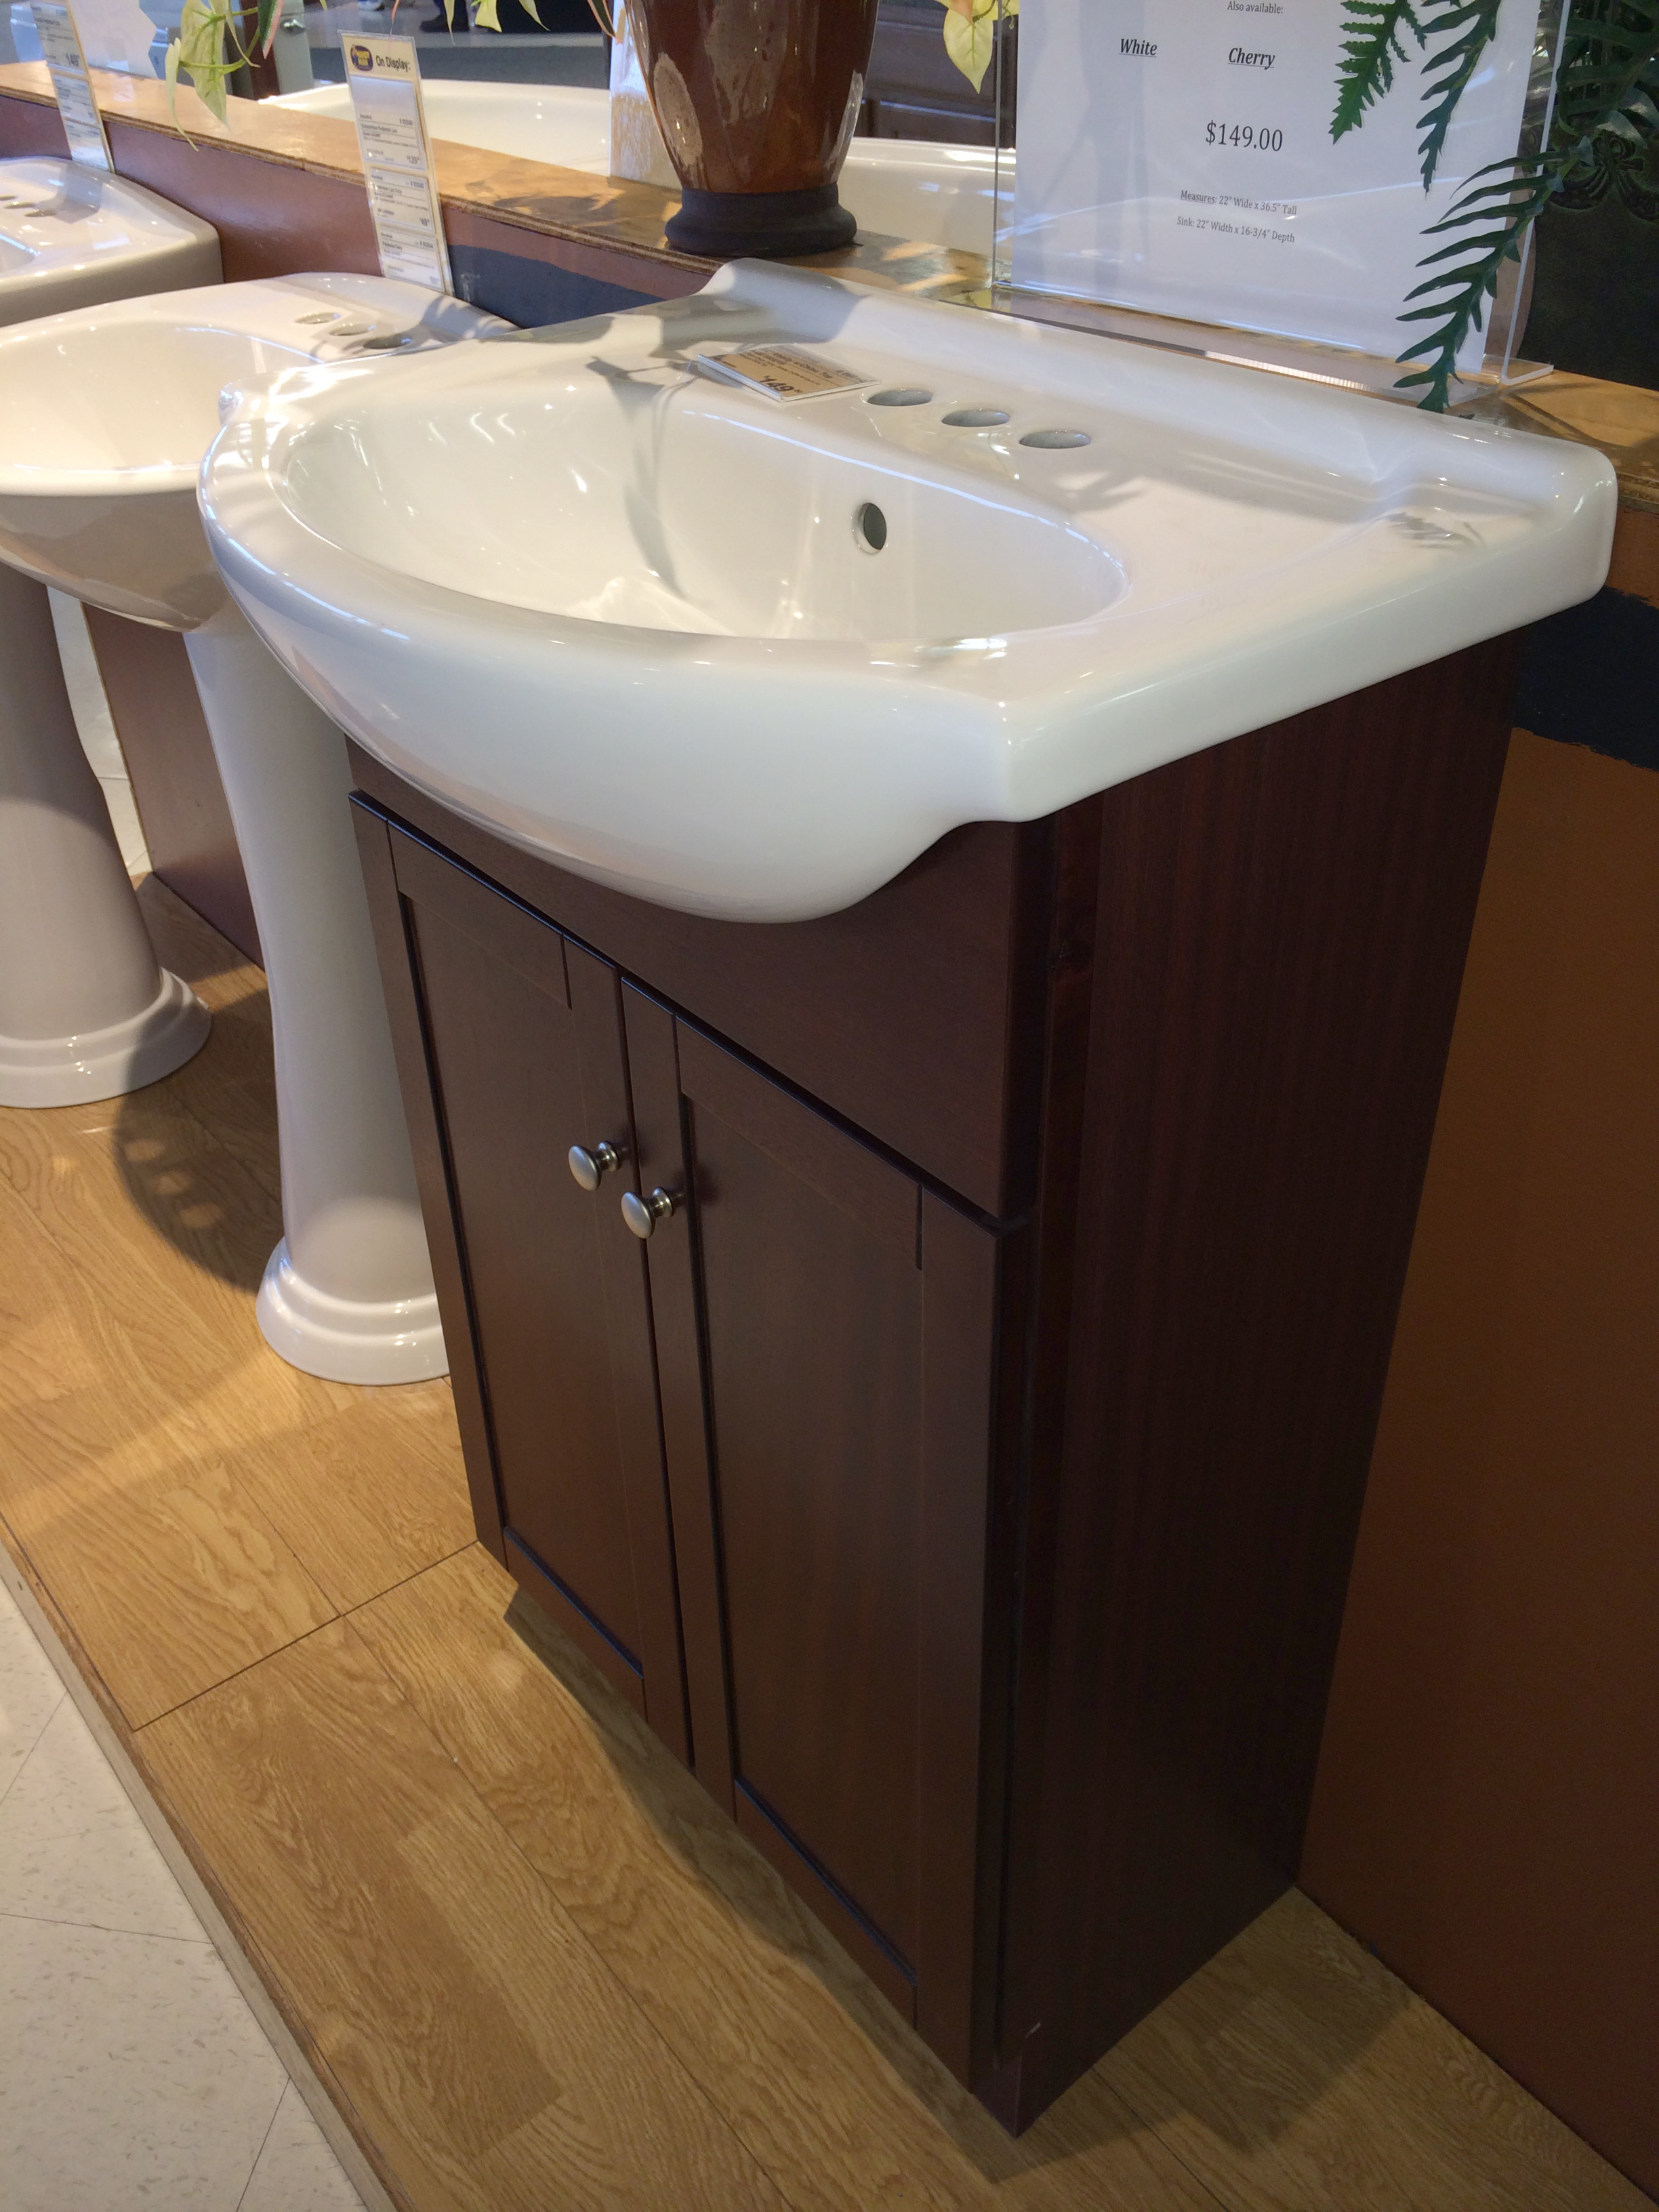 sinks bath bathroom tile by sink muse icera richmond bathrooms pedestal